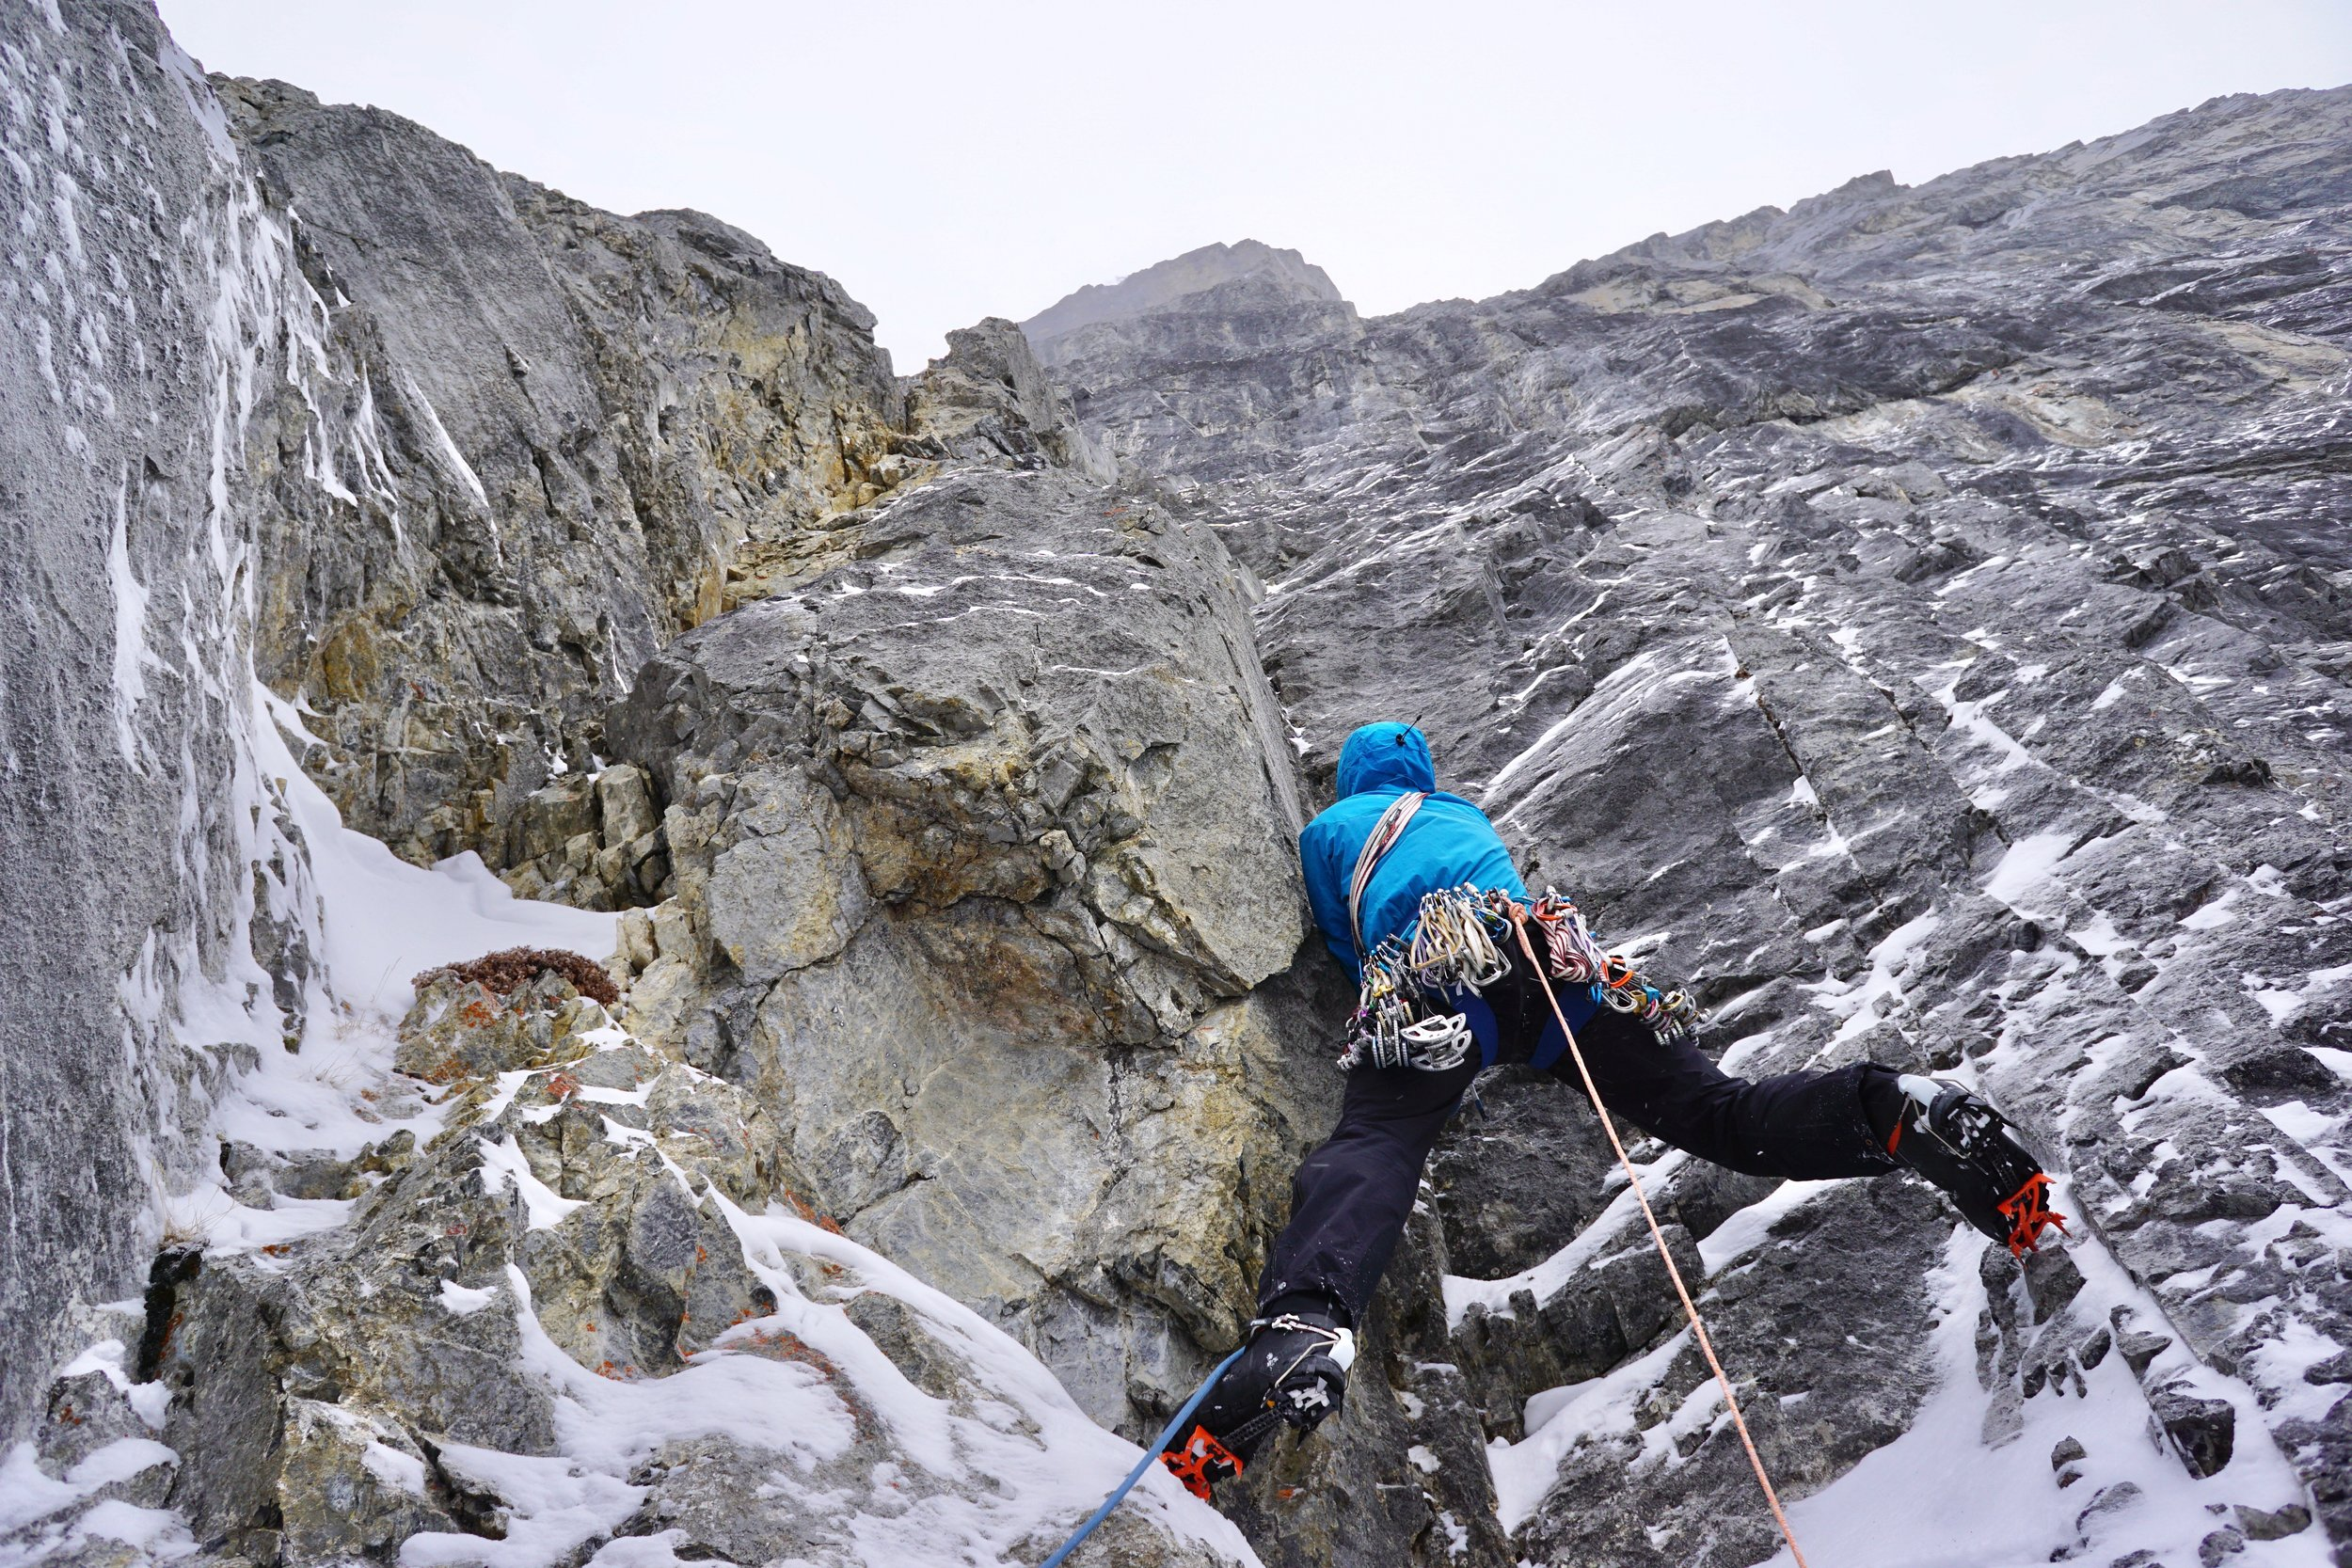 Marc-Andre Leclerc attempting a winter ascent of Ha-Ling, Canmore. Canada.